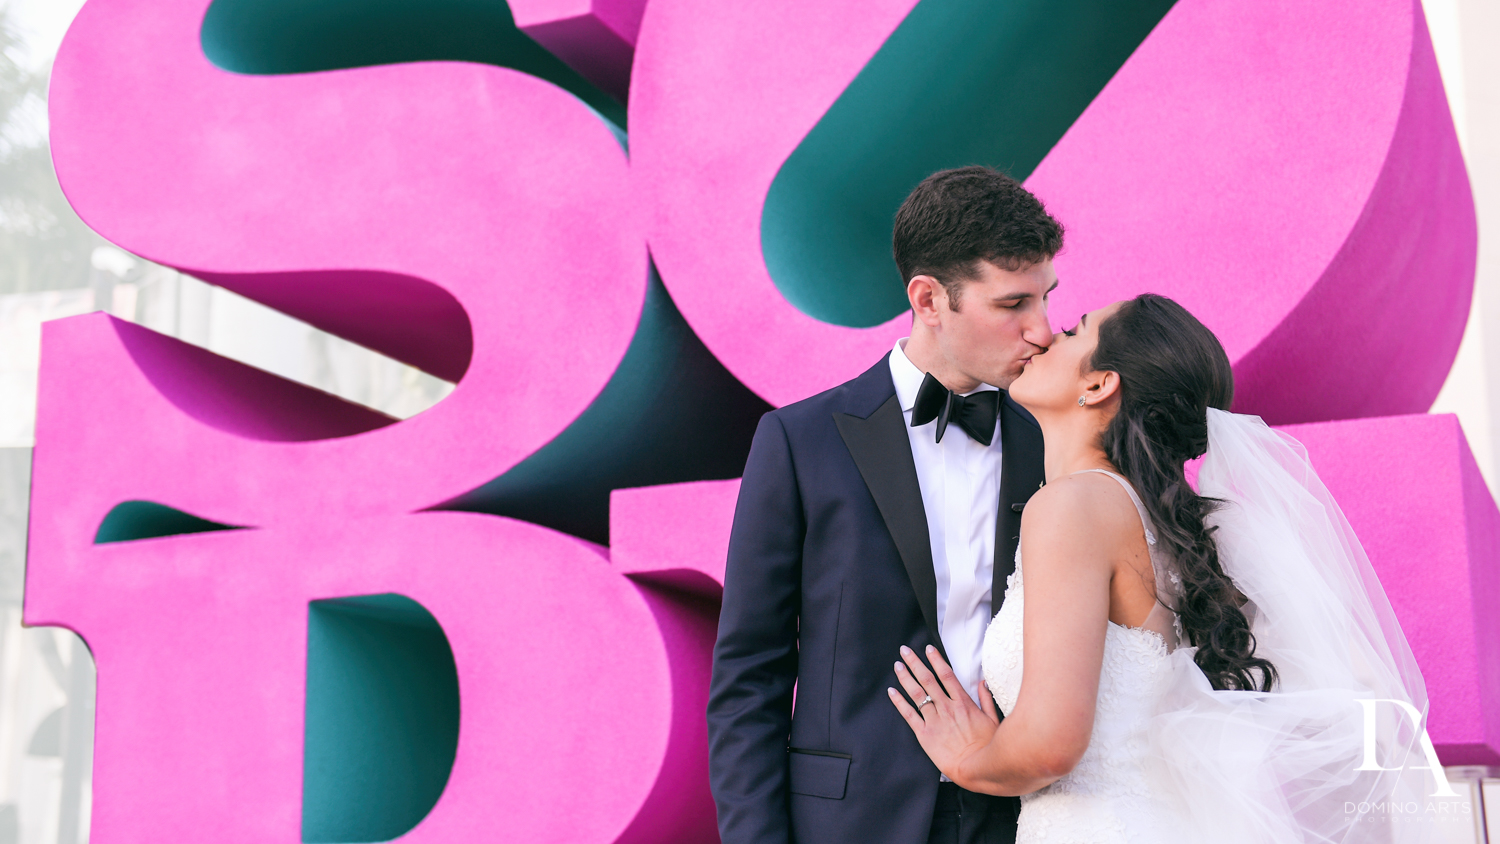 SOBE romantic portraits at Classic Miami Beach Wedding at Temple Emanu-El and Emanuel Luxury Venue by Domino Arts Photography